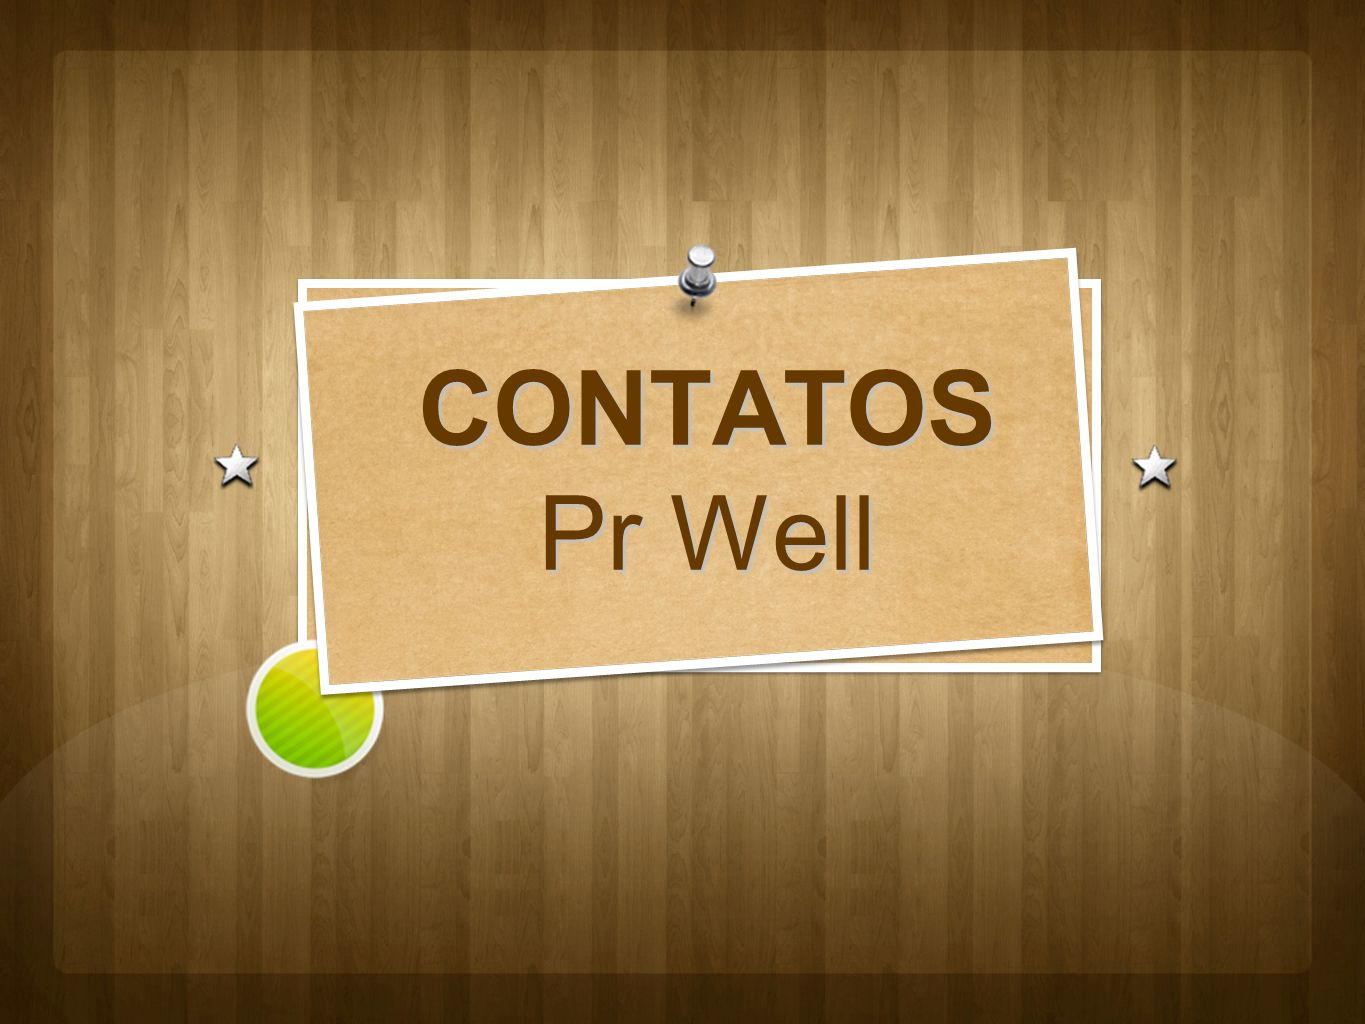 CONTATOS Pr Well